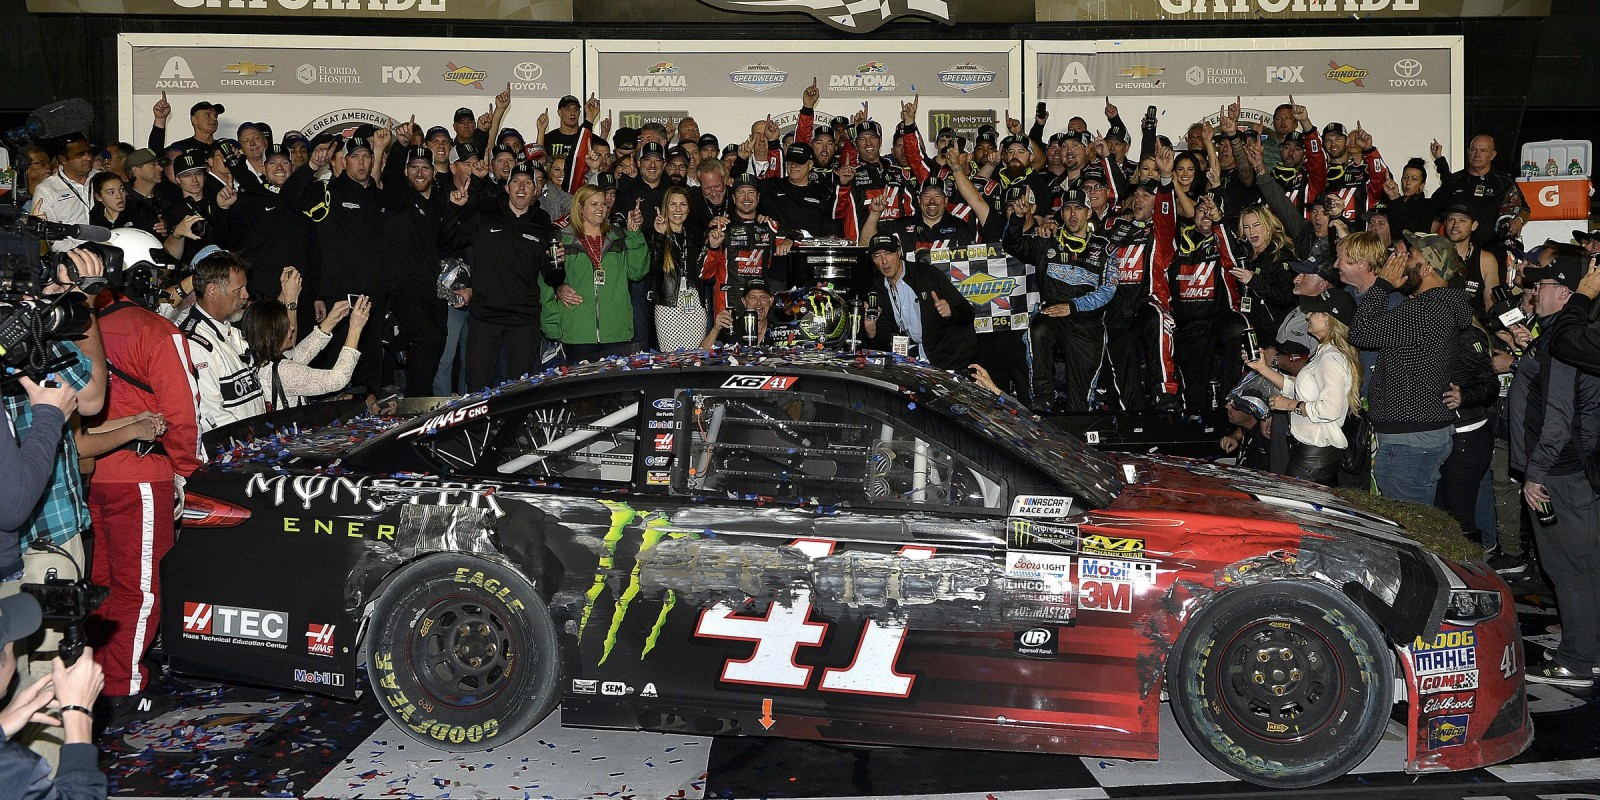 Kurt Busch kicks off the Monster Energy Cup Series with the checkered flag at the Daytona 500